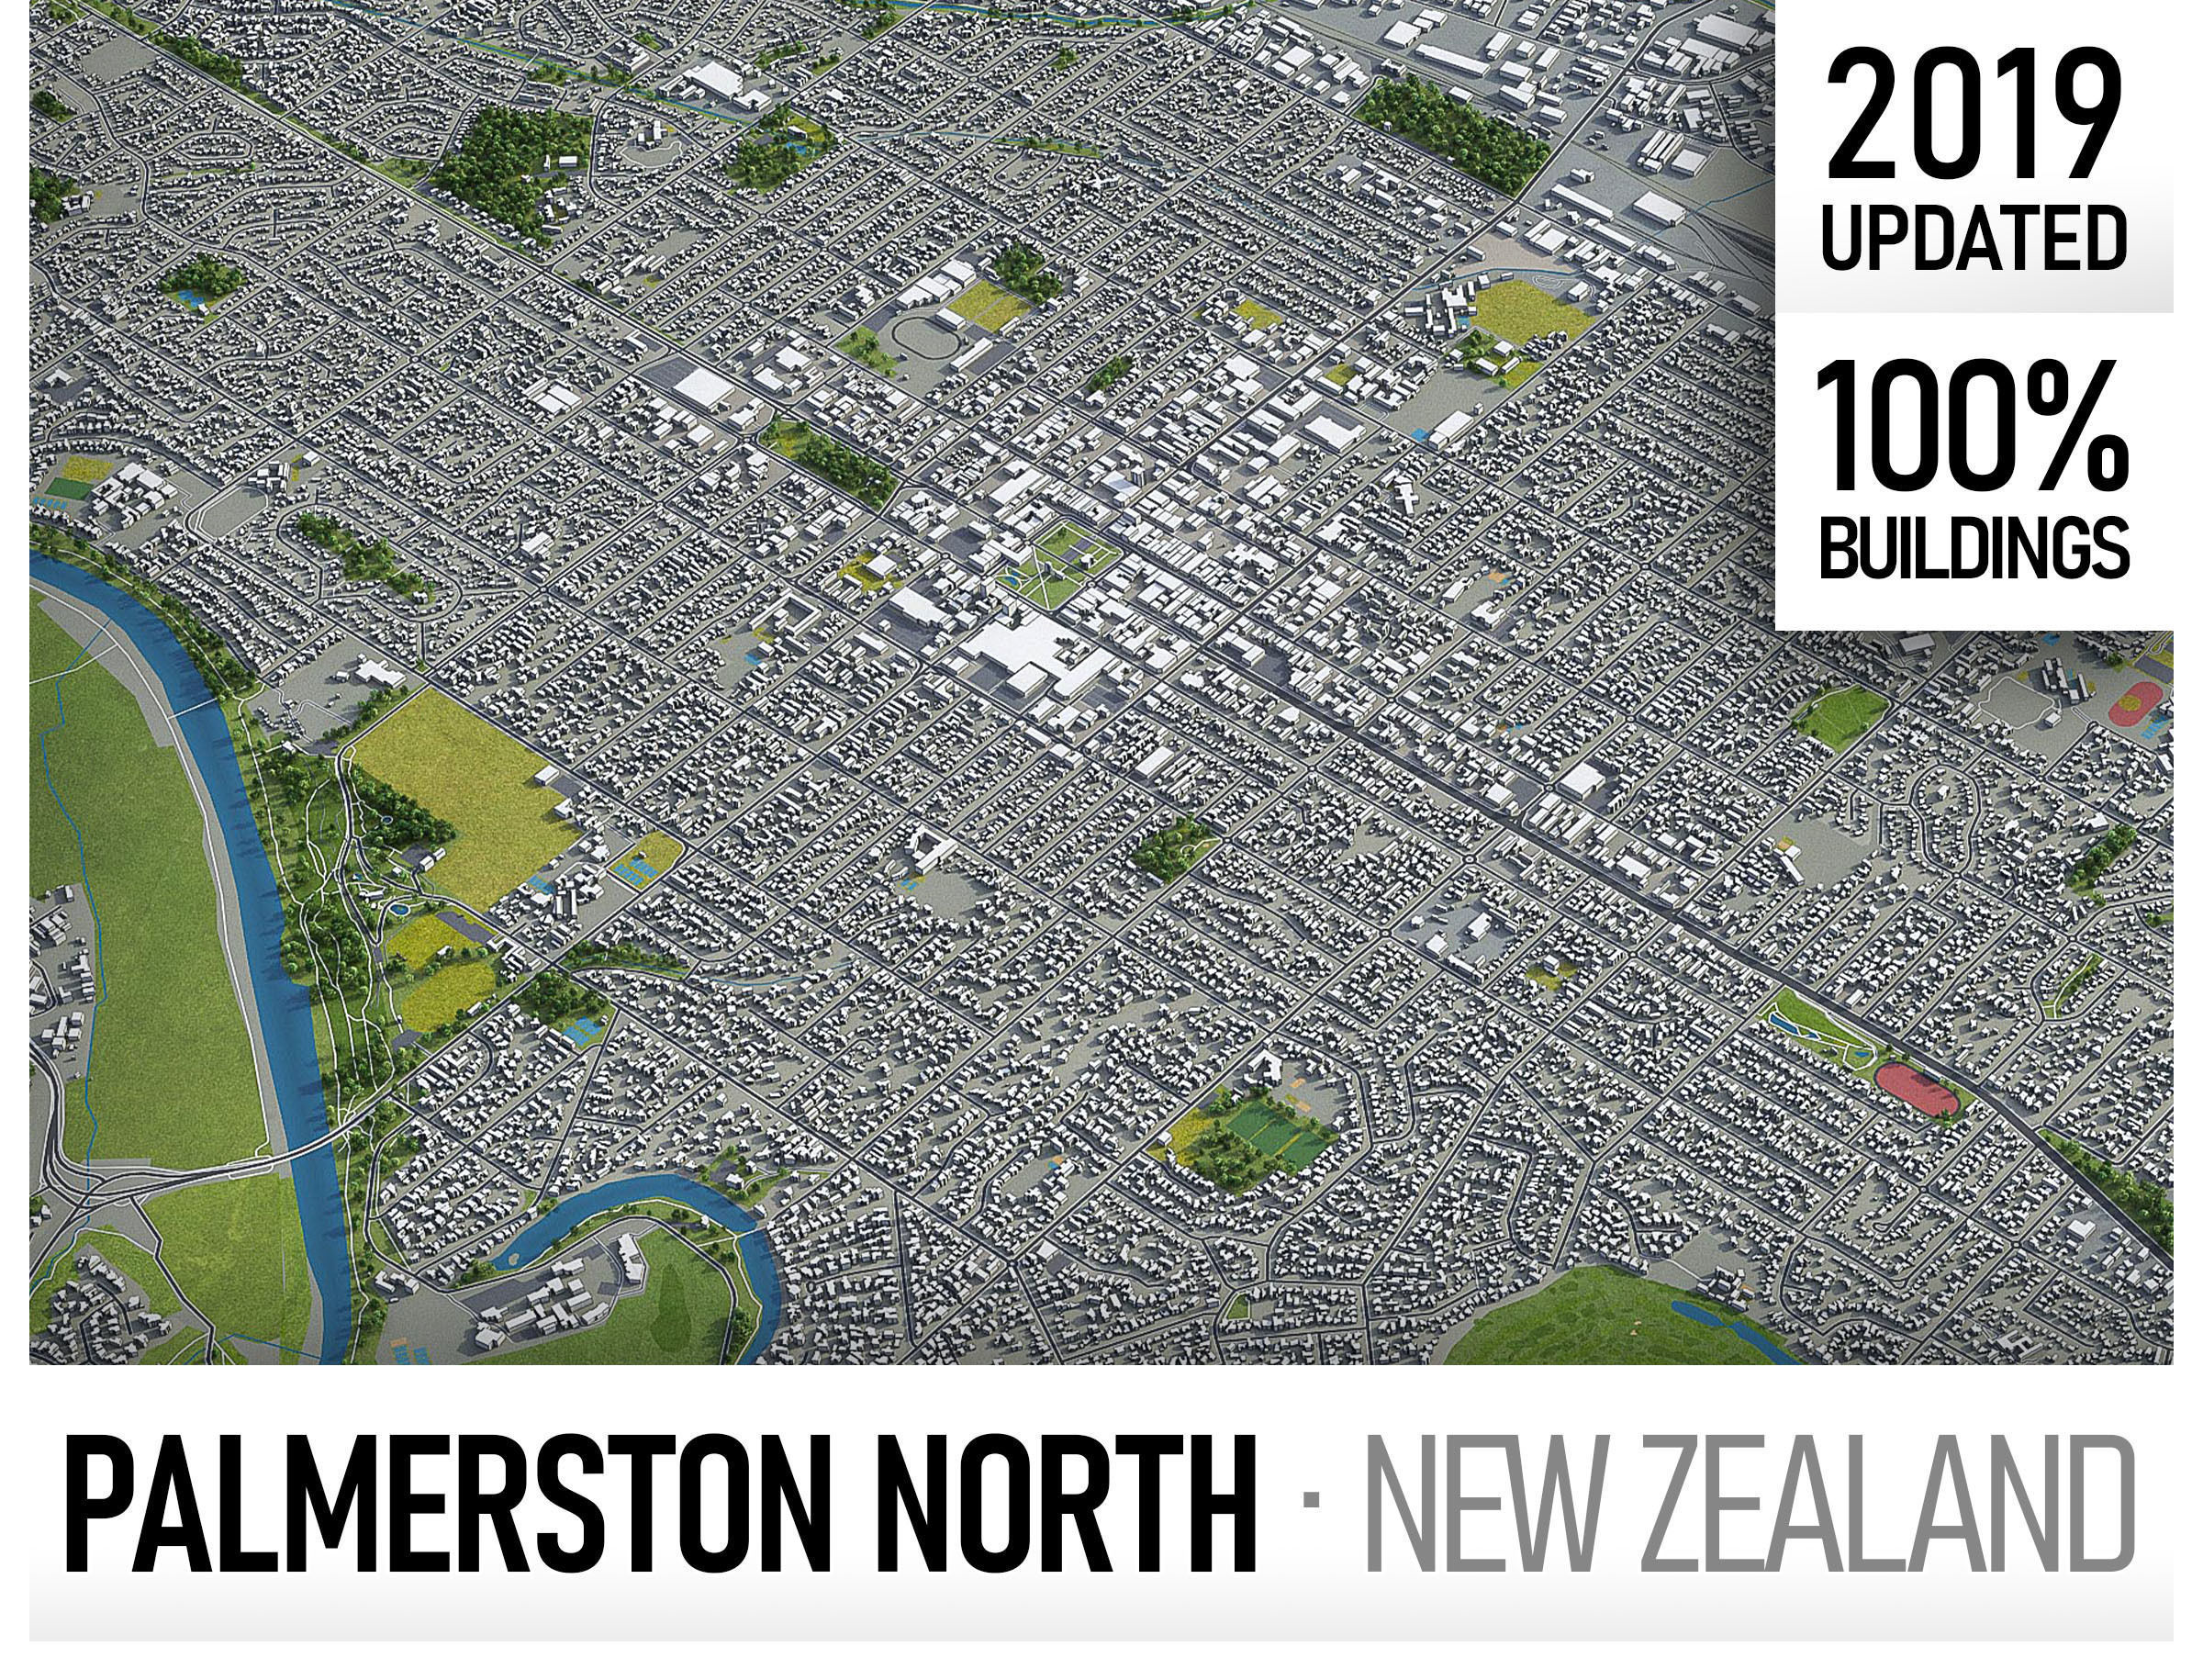 Palmerston North - city and surroundings